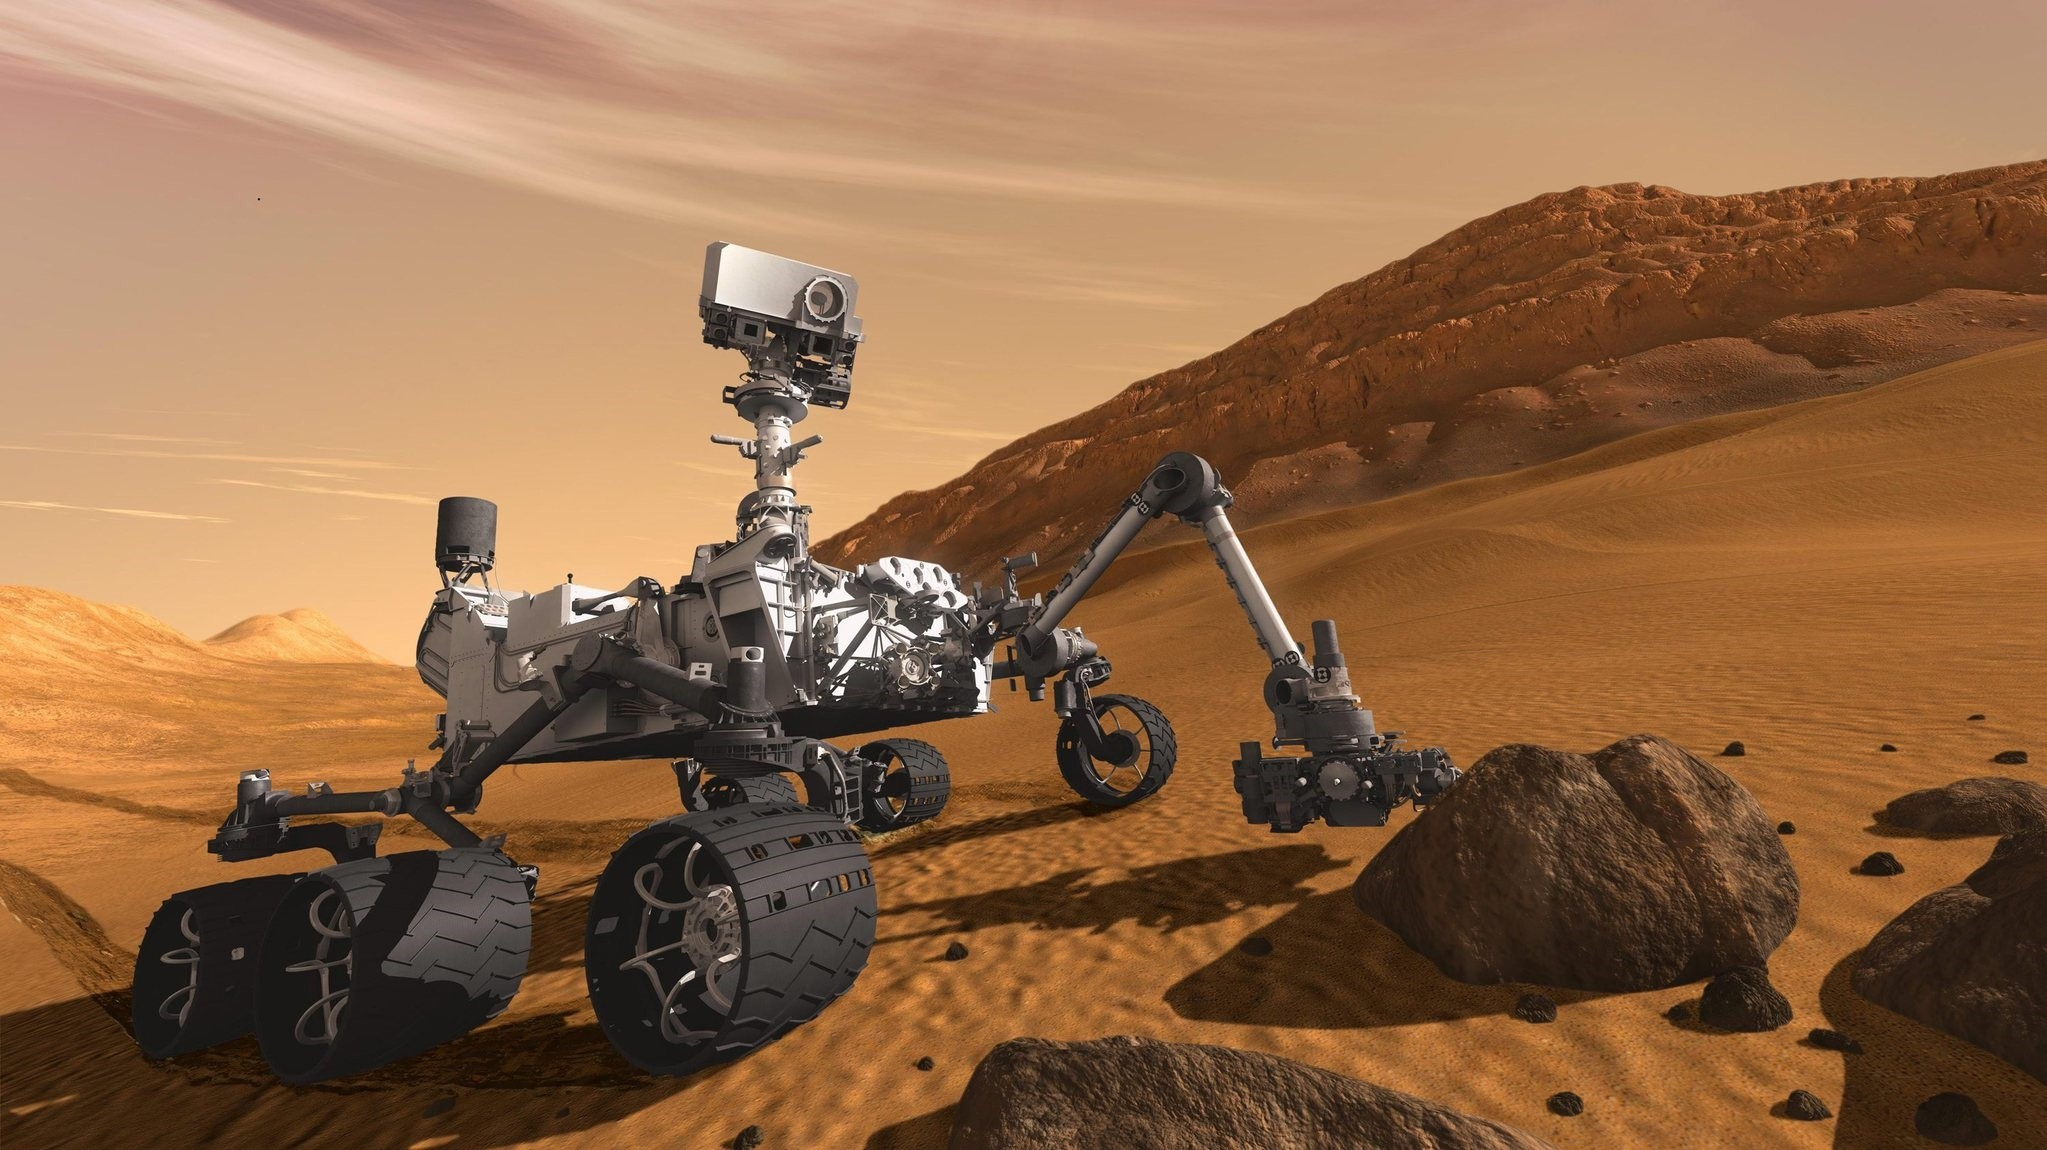 In this 2011 artist's rendering provided by NASA/JPL-Caltech, the Mars Science Laboratory Curiosity rover examines a rock on Mars with a set of tools at the end of its arm, which extends about 2 meters. (AP Photo)